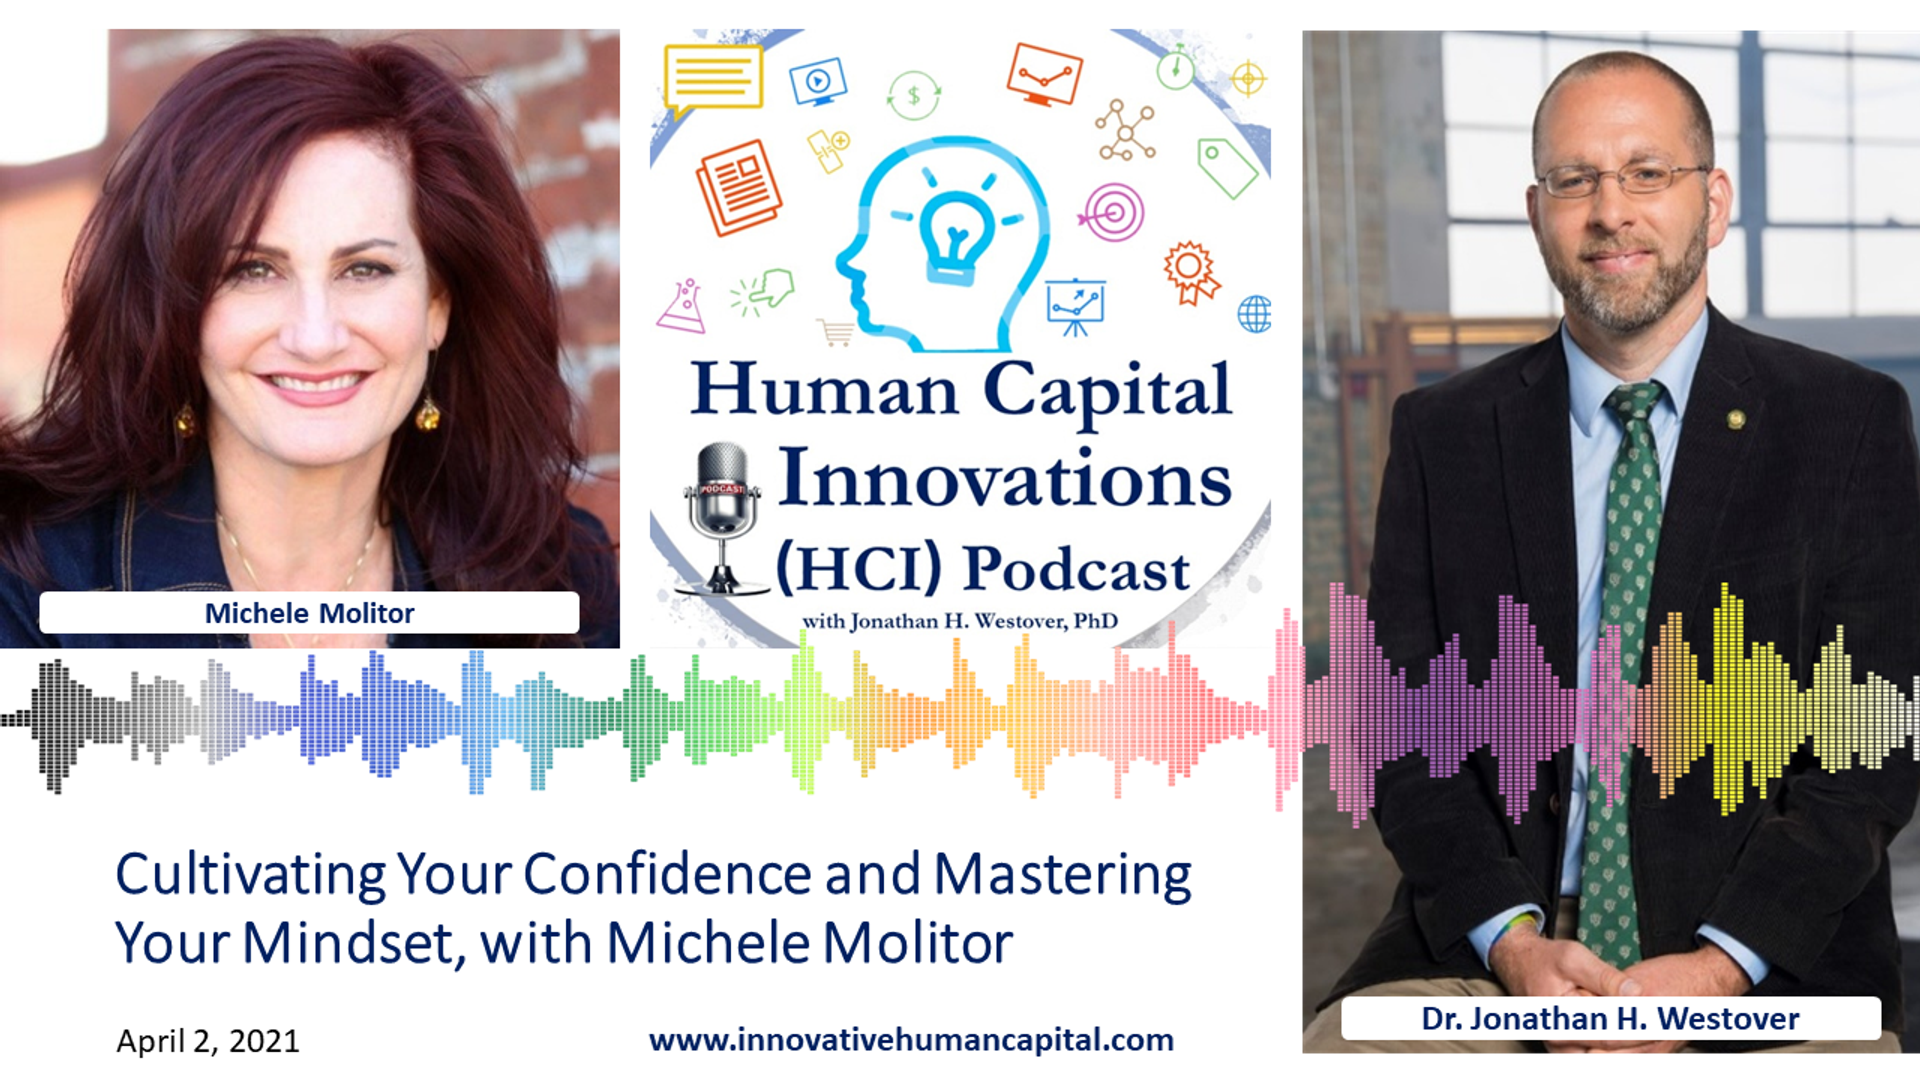 Cultivating Your Confidence and Mastering Your Mindset